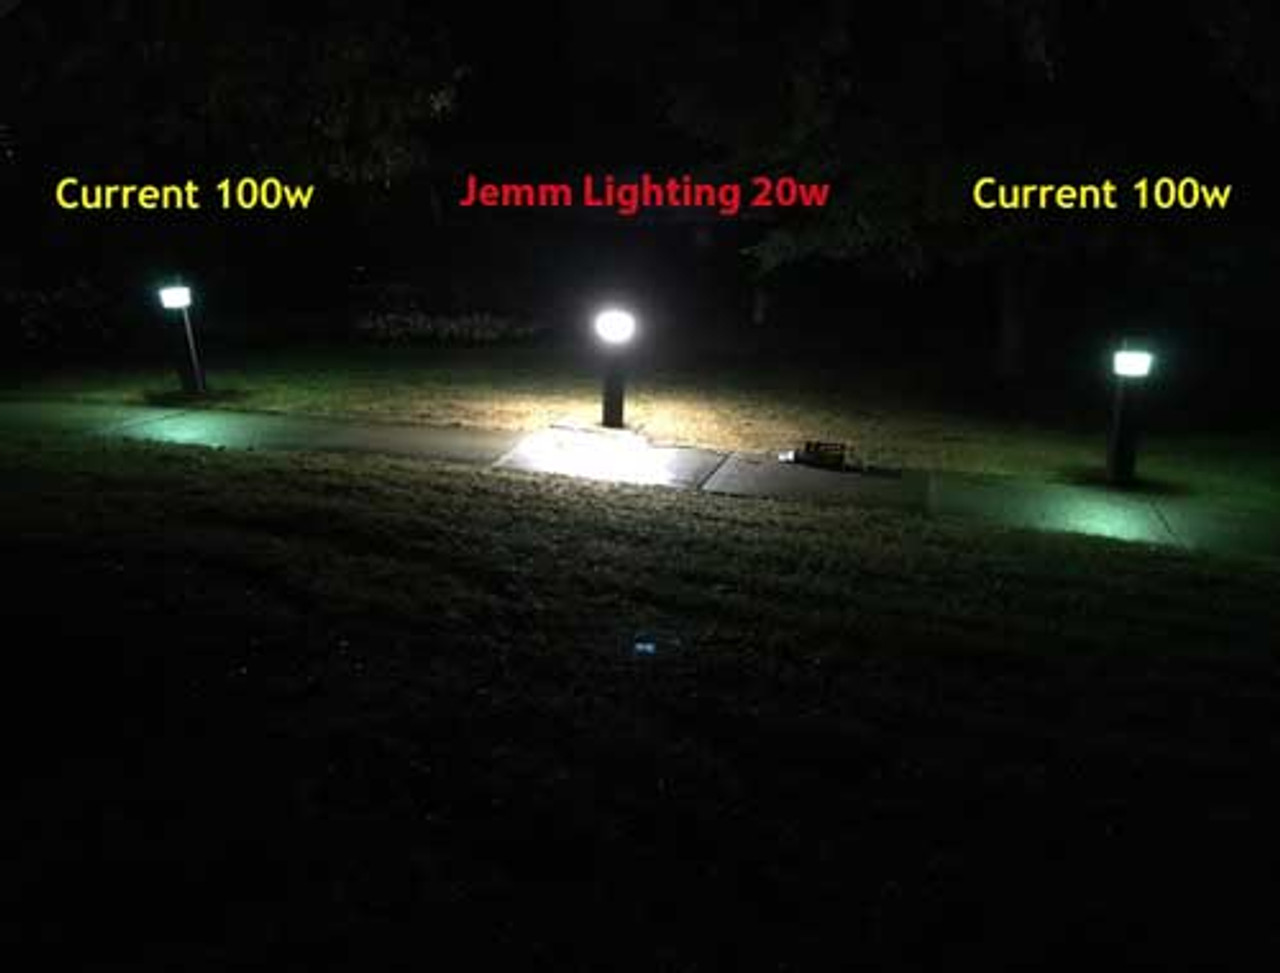 Compare 20 Watt LED to 100 Watt MH